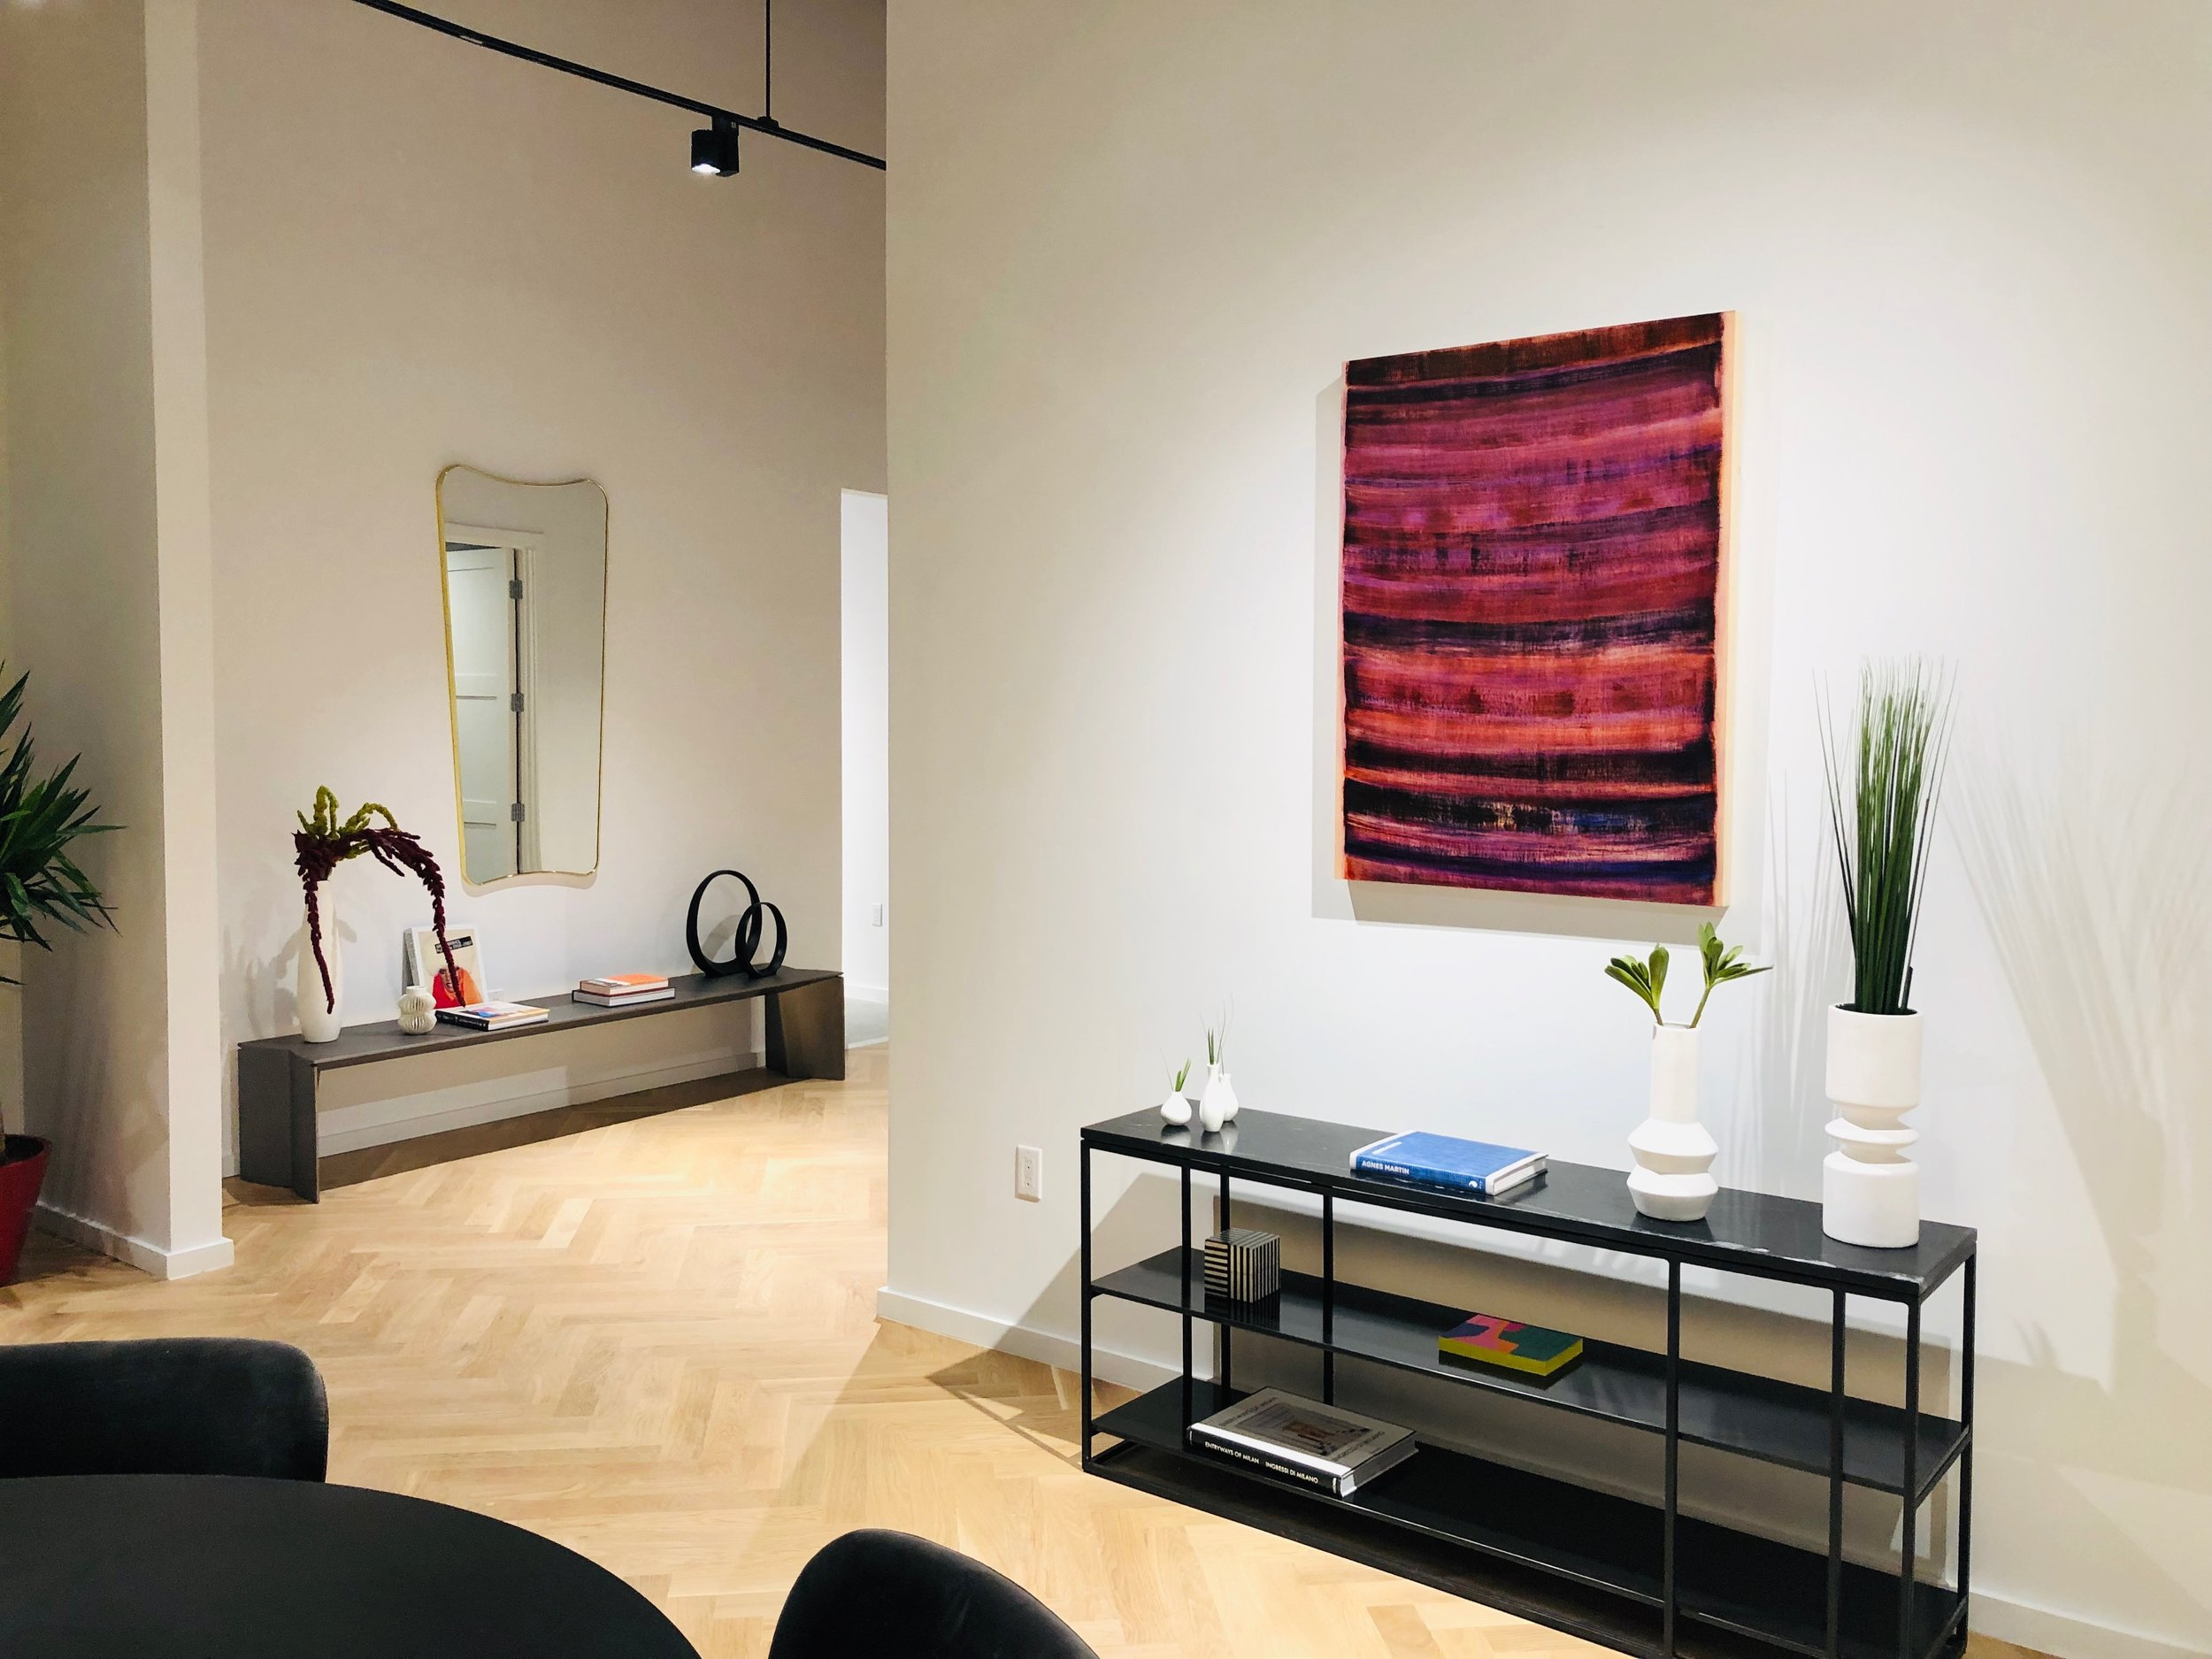 The Museum House Sales Gallery: Installation View with artwork by Emily Berger